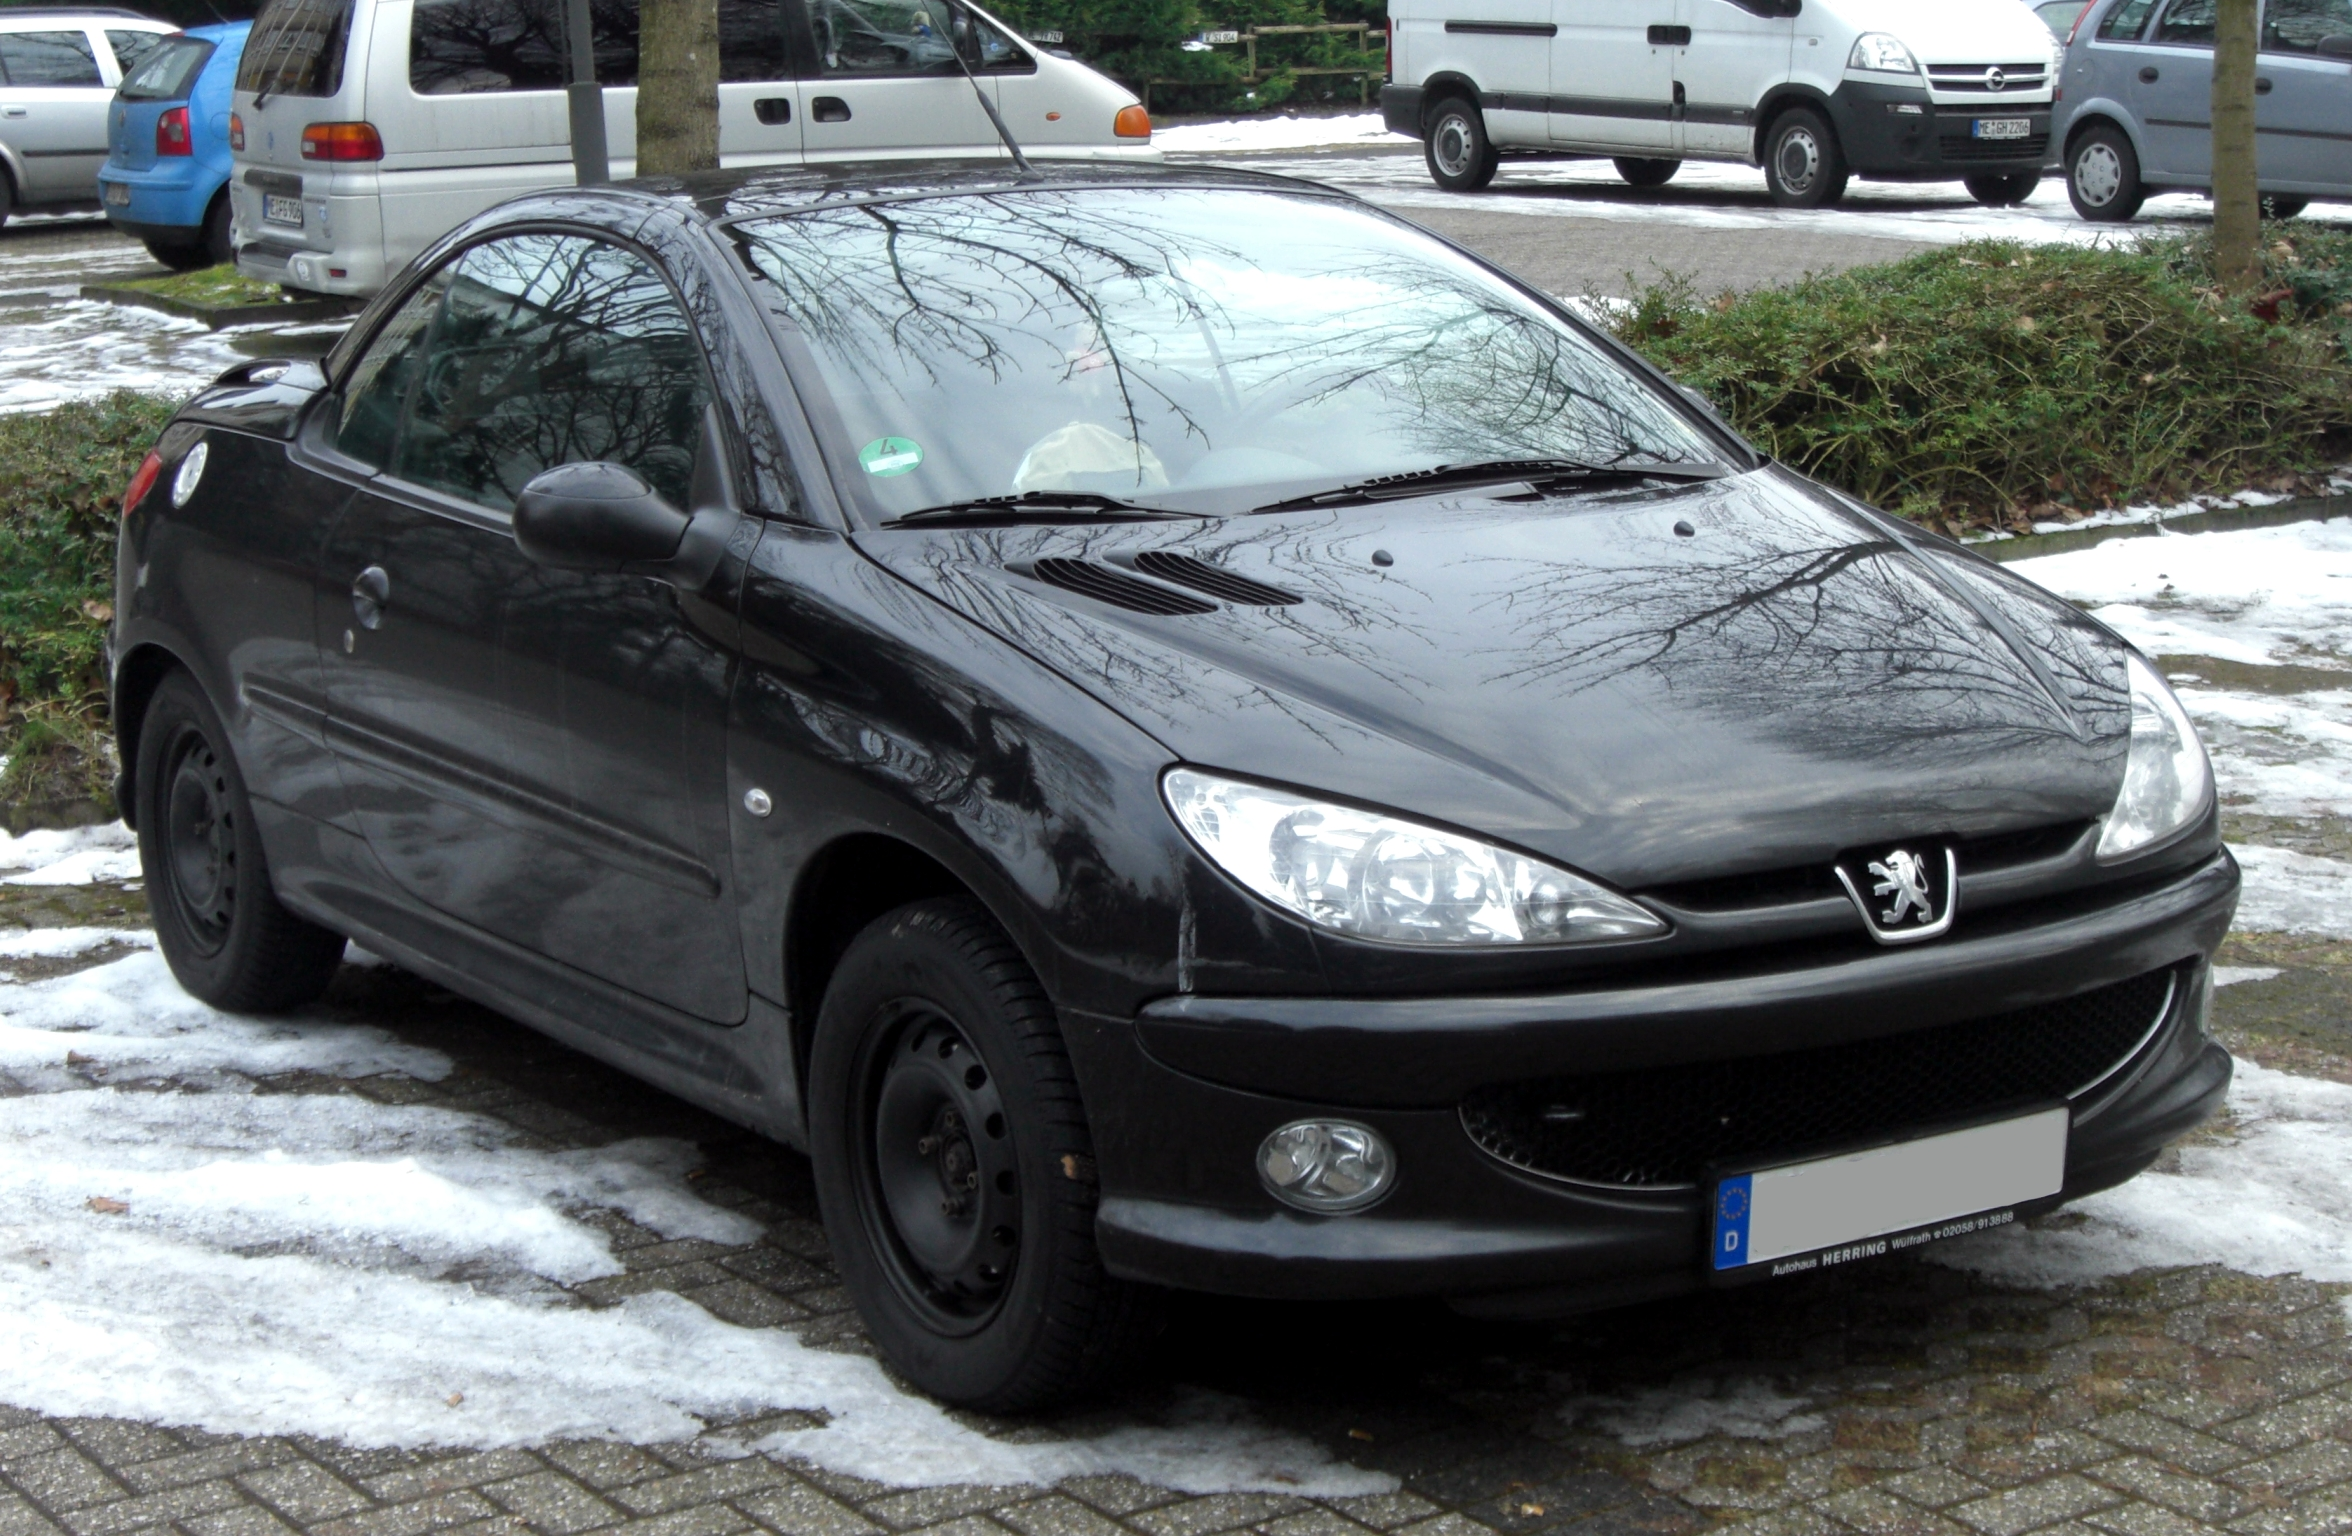 file peugeot 206 cc front jpg wikimedia commons. Black Bedroom Furniture Sets. Home Design Ideas